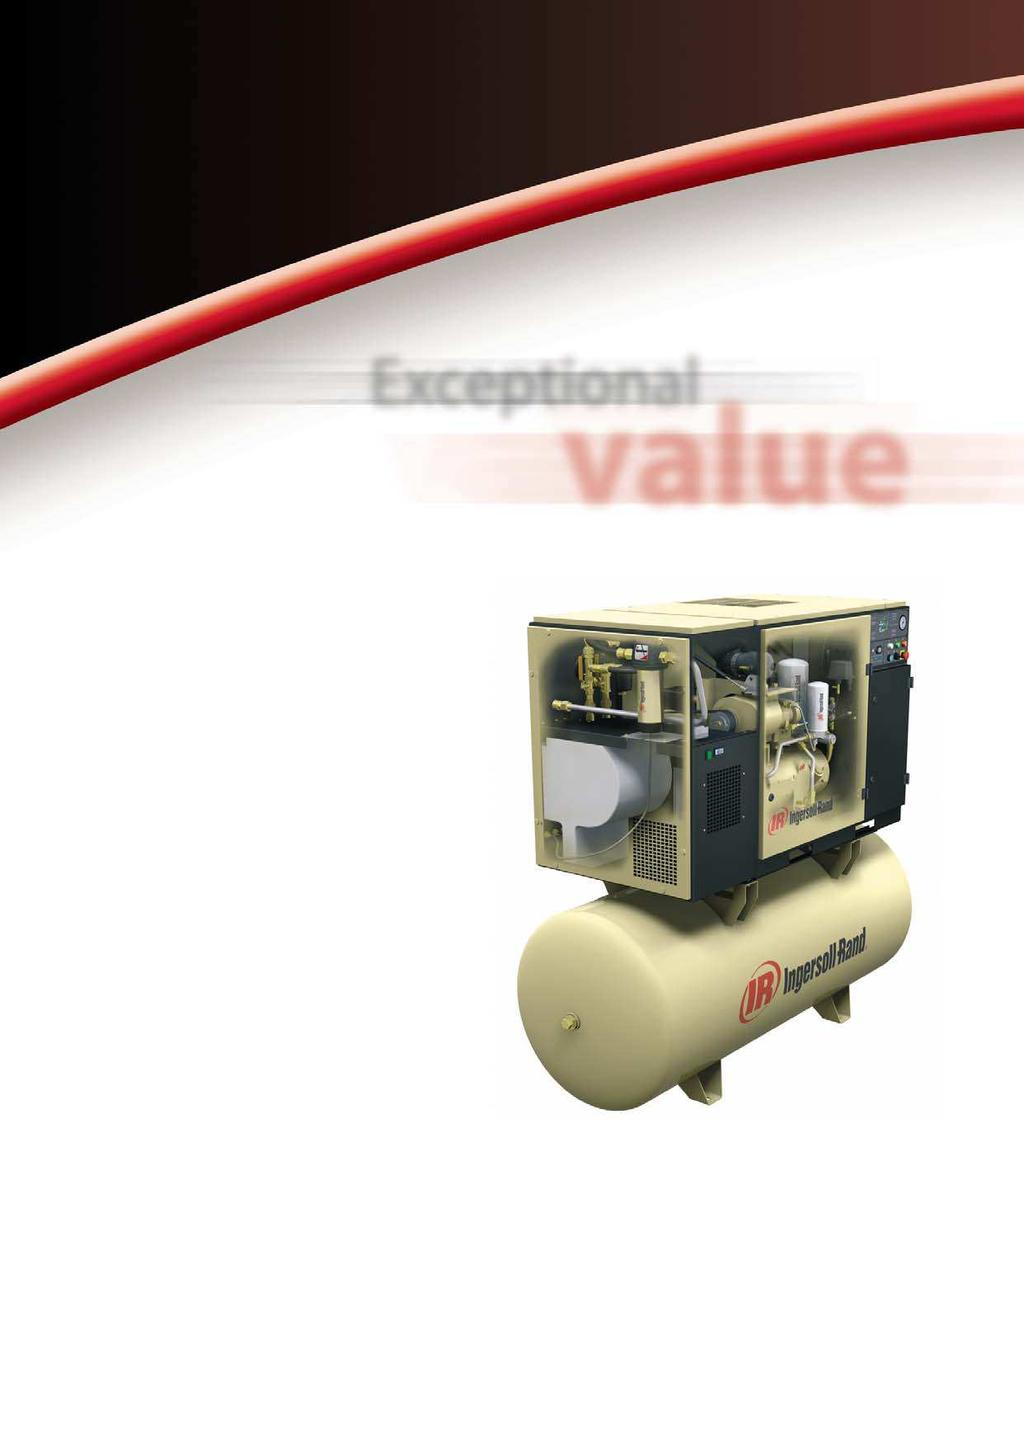 Rotary Screw Compressors UP5 Series 11-37 kw Ultimate Reliability Maximum Uptime Ingersoll-Rand is so confident in the performance of the UP-Series, that we ve extended the warranty to 5 years.